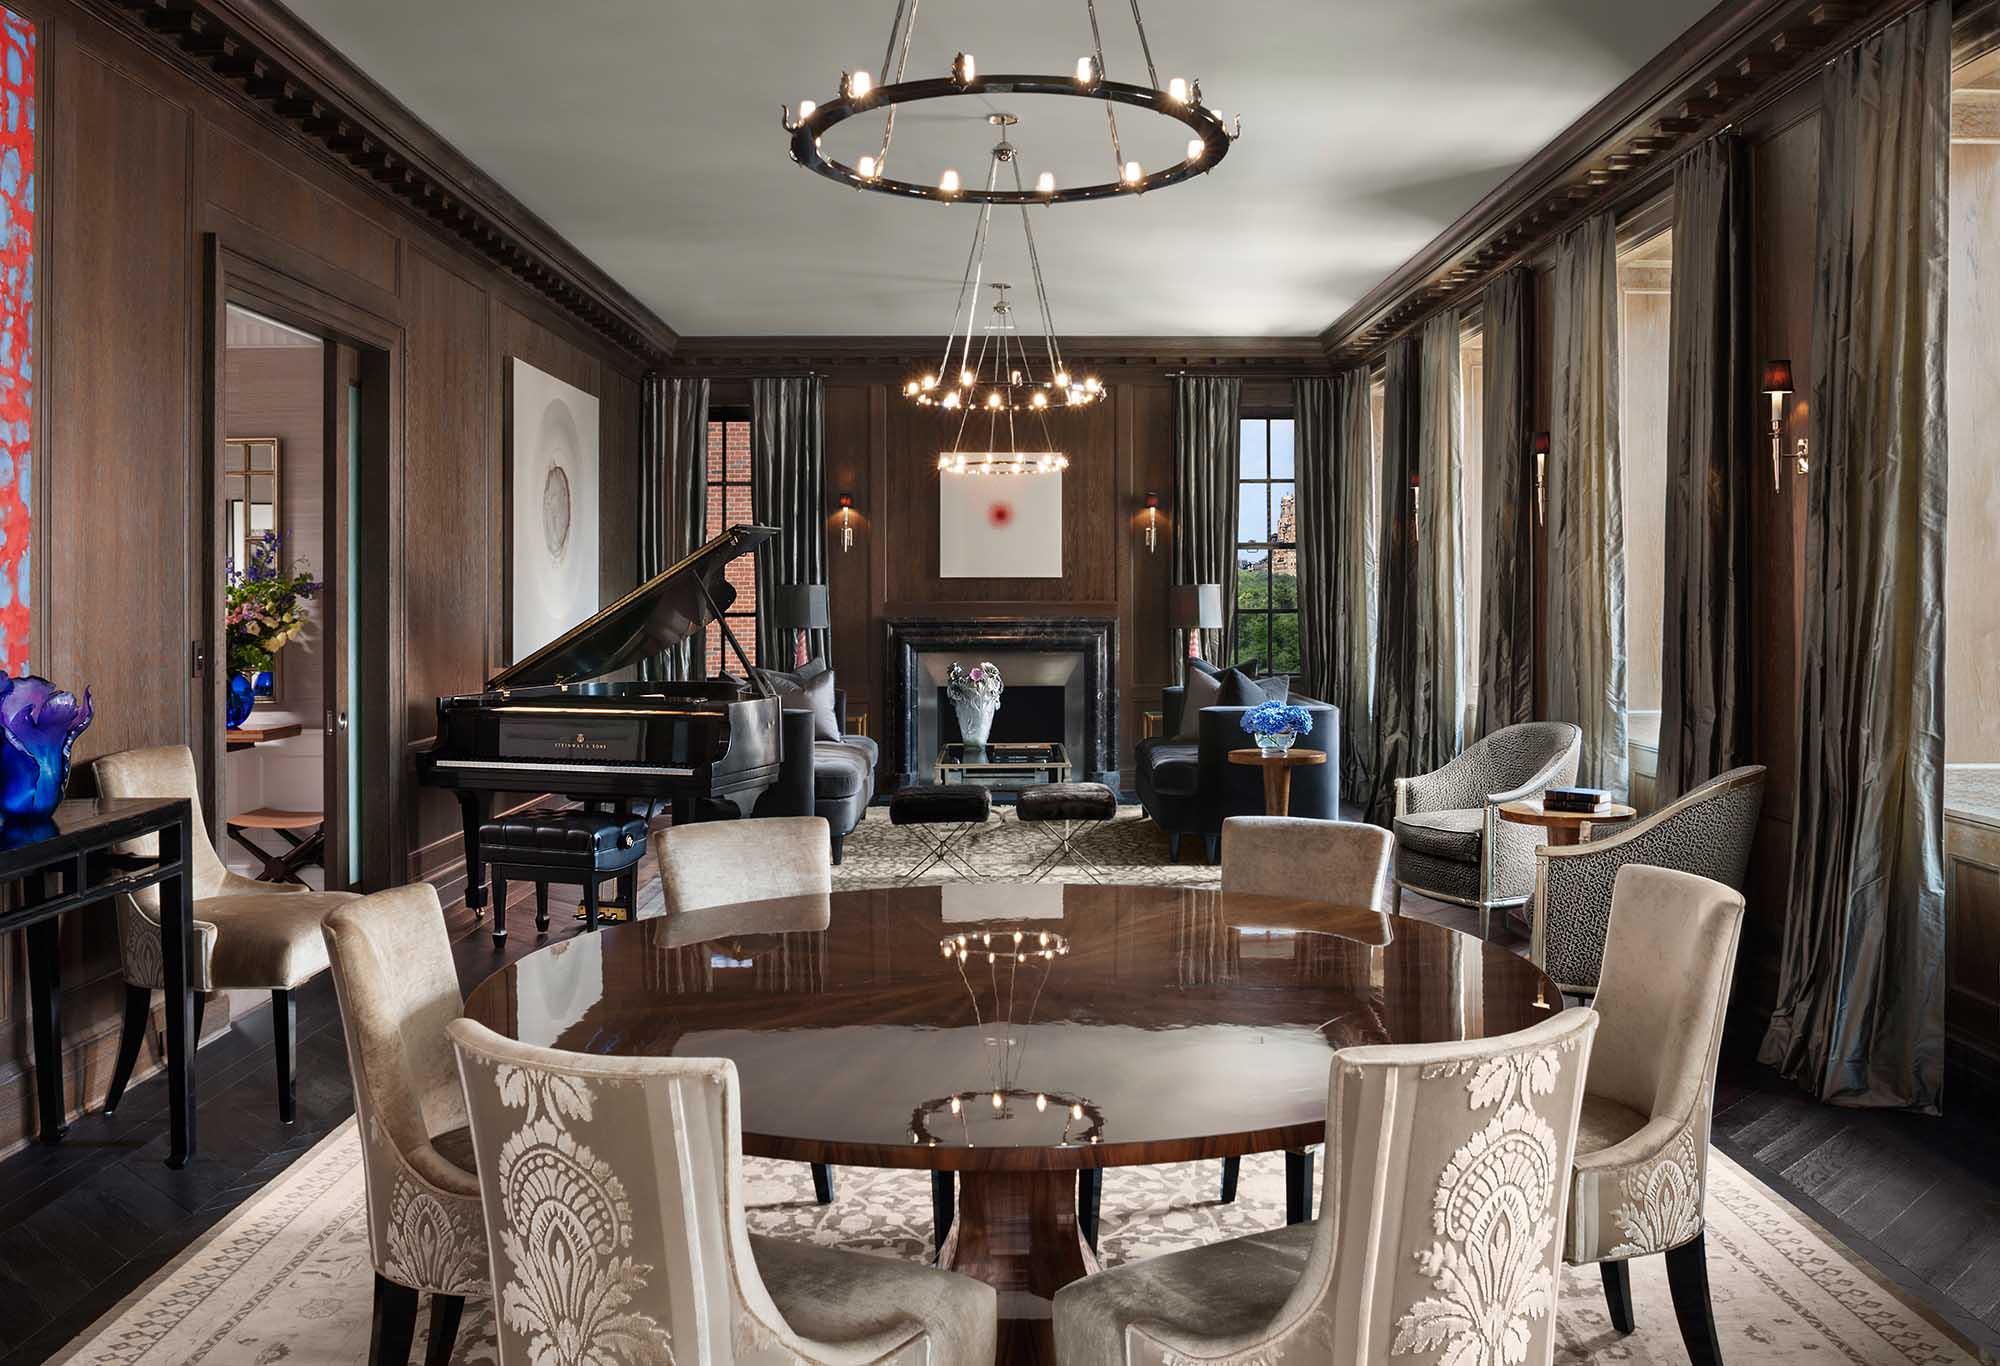 79th Street Apartment, Lenox Hill, Manhattan, Central Park transitional, great room, salon, dining room, living room, steinway piano, firplace, modern art